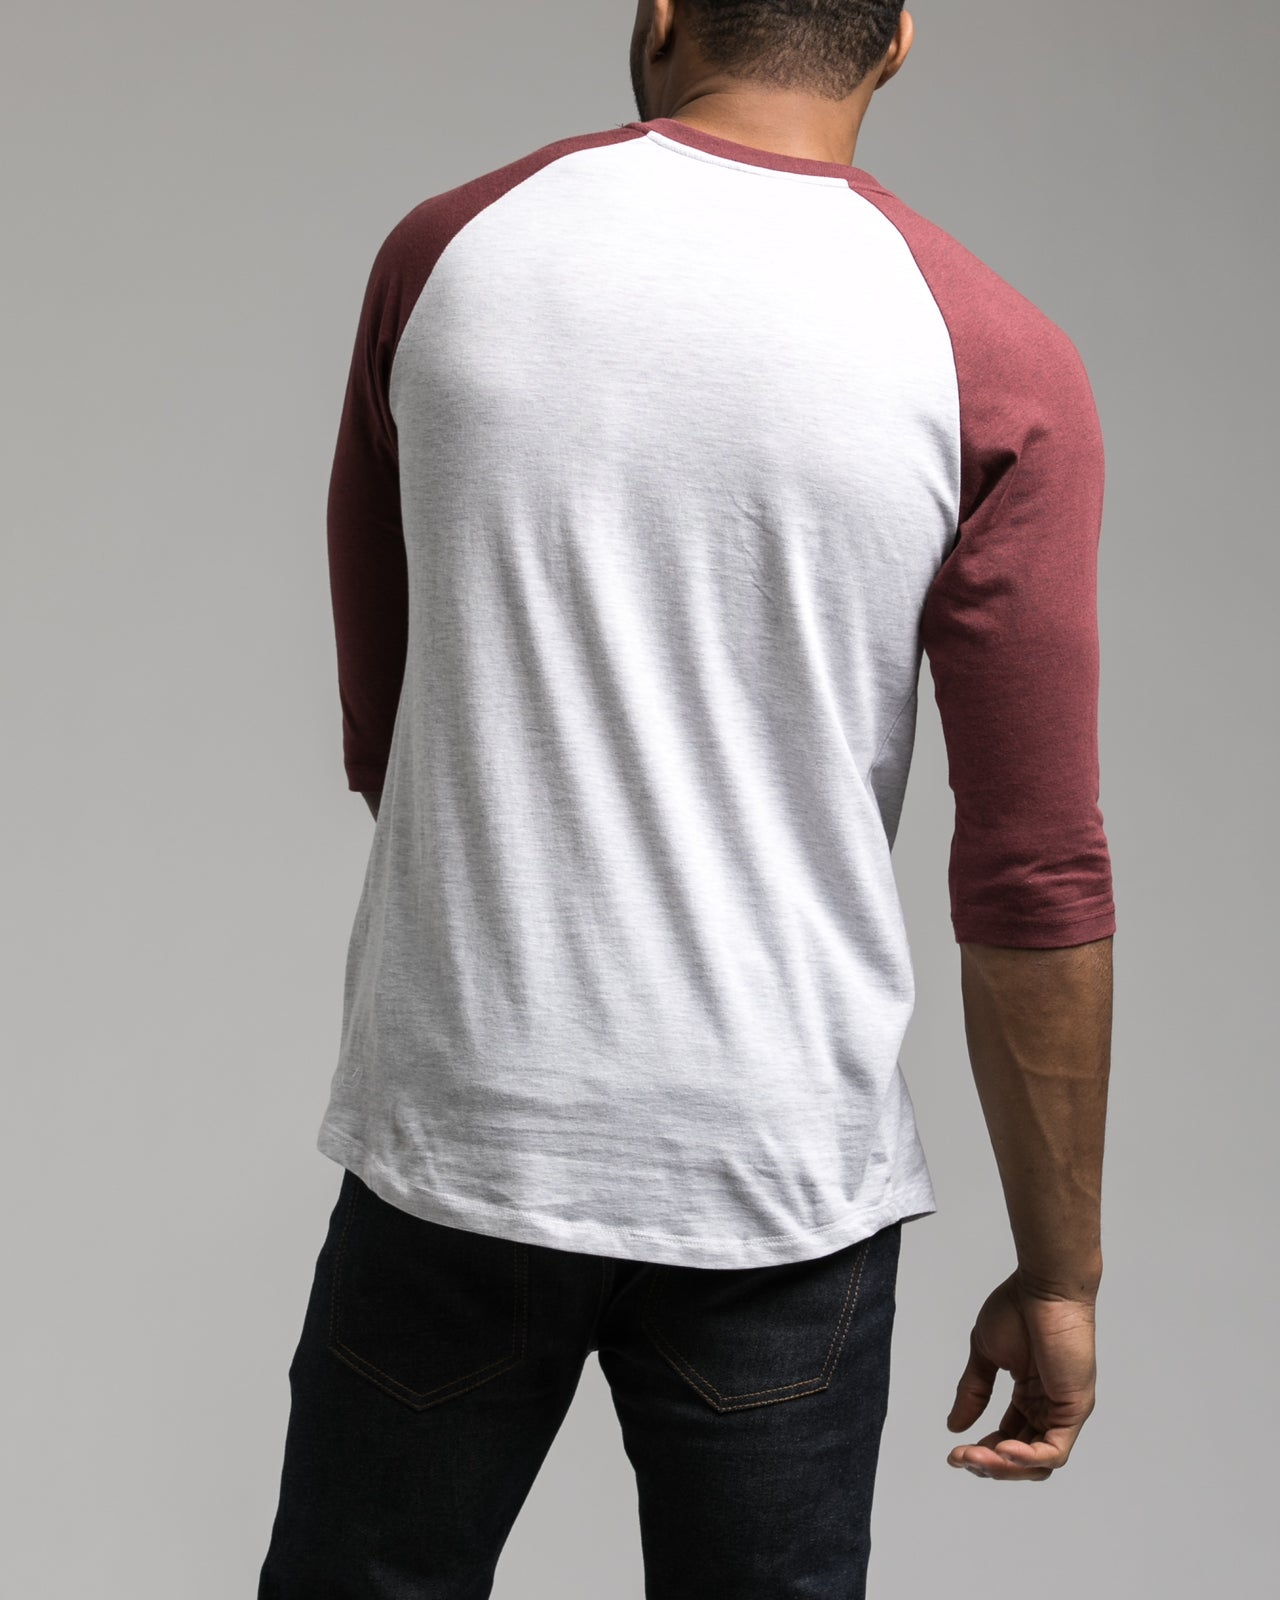 Contrast Heather Henley Tee - Color: Port Heather | Red